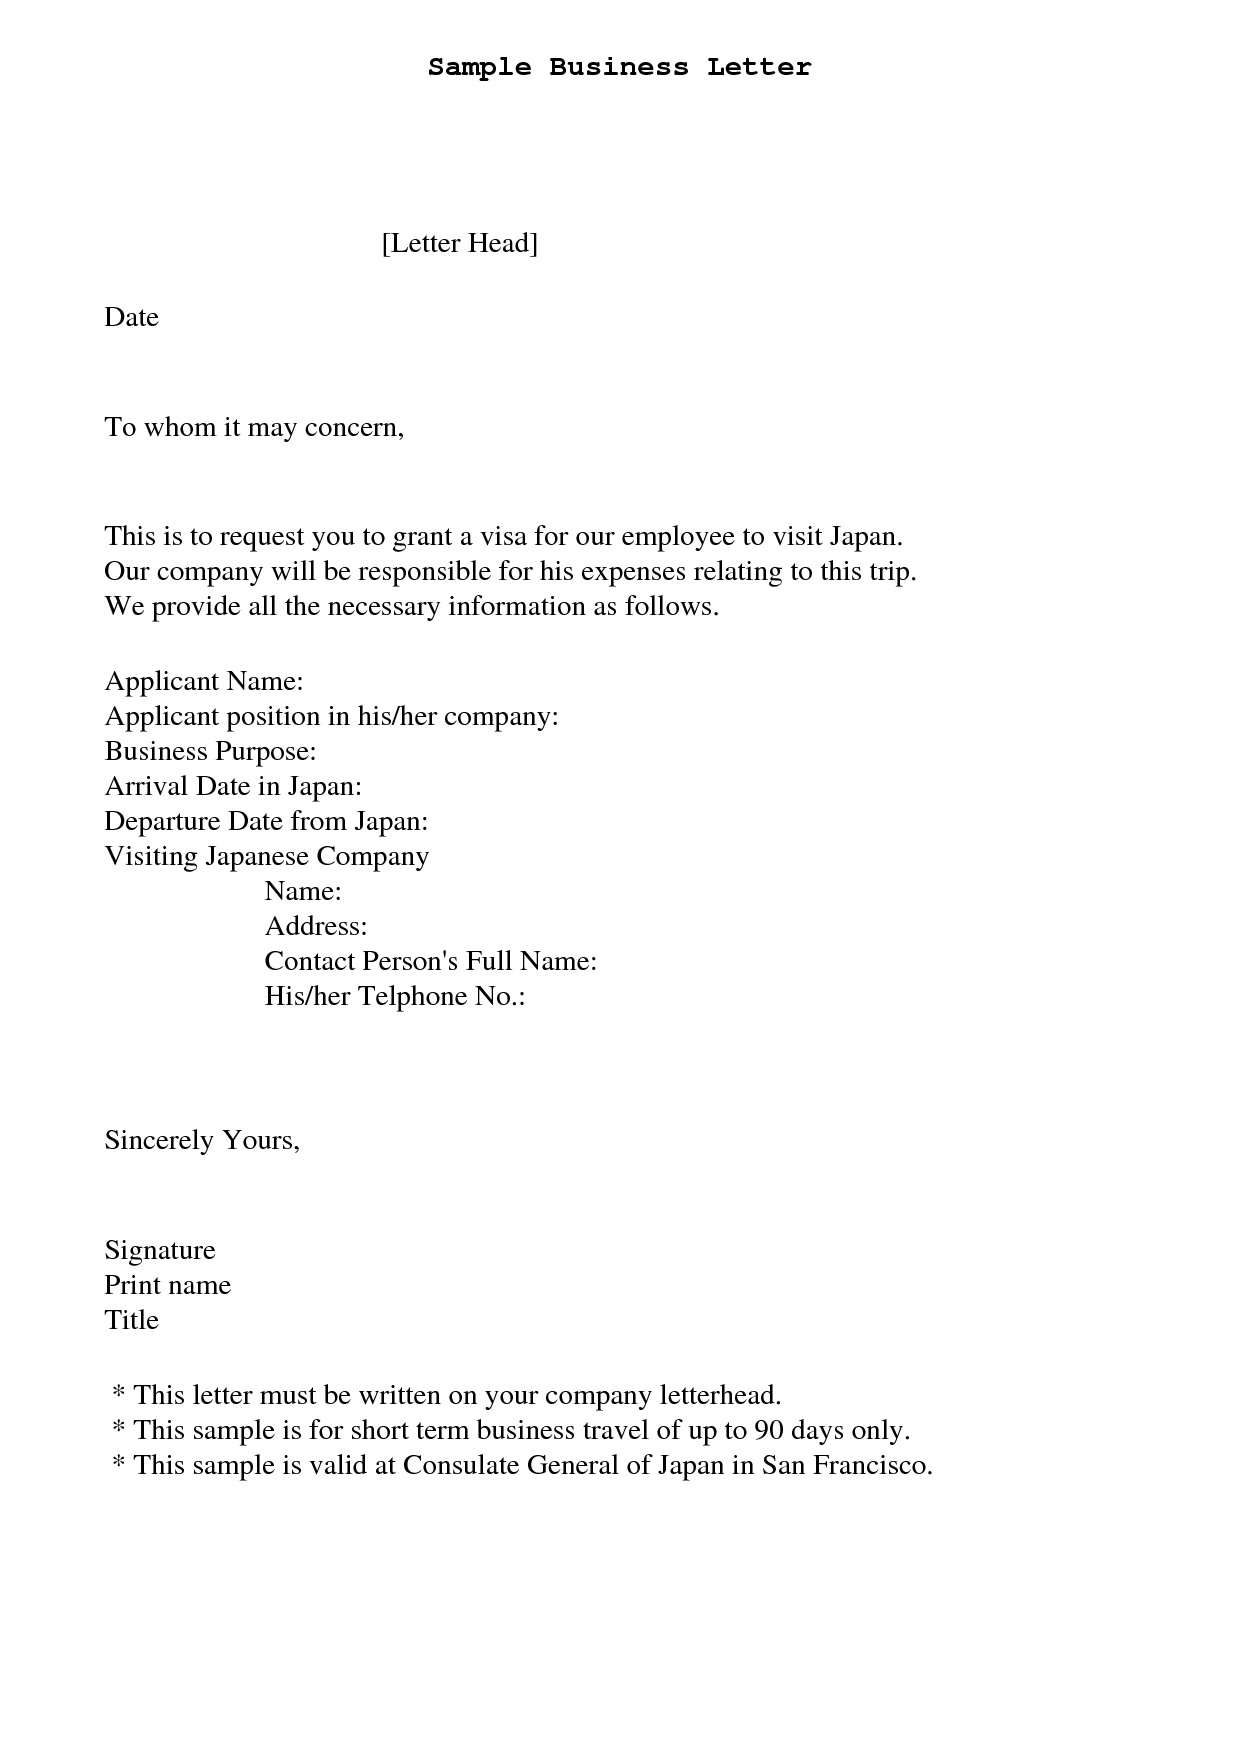 Professional letter format to whom it may concern formal letter professional letter format to whom it may concern formal letter format to whom it may concern thecheapjerseys Image collections